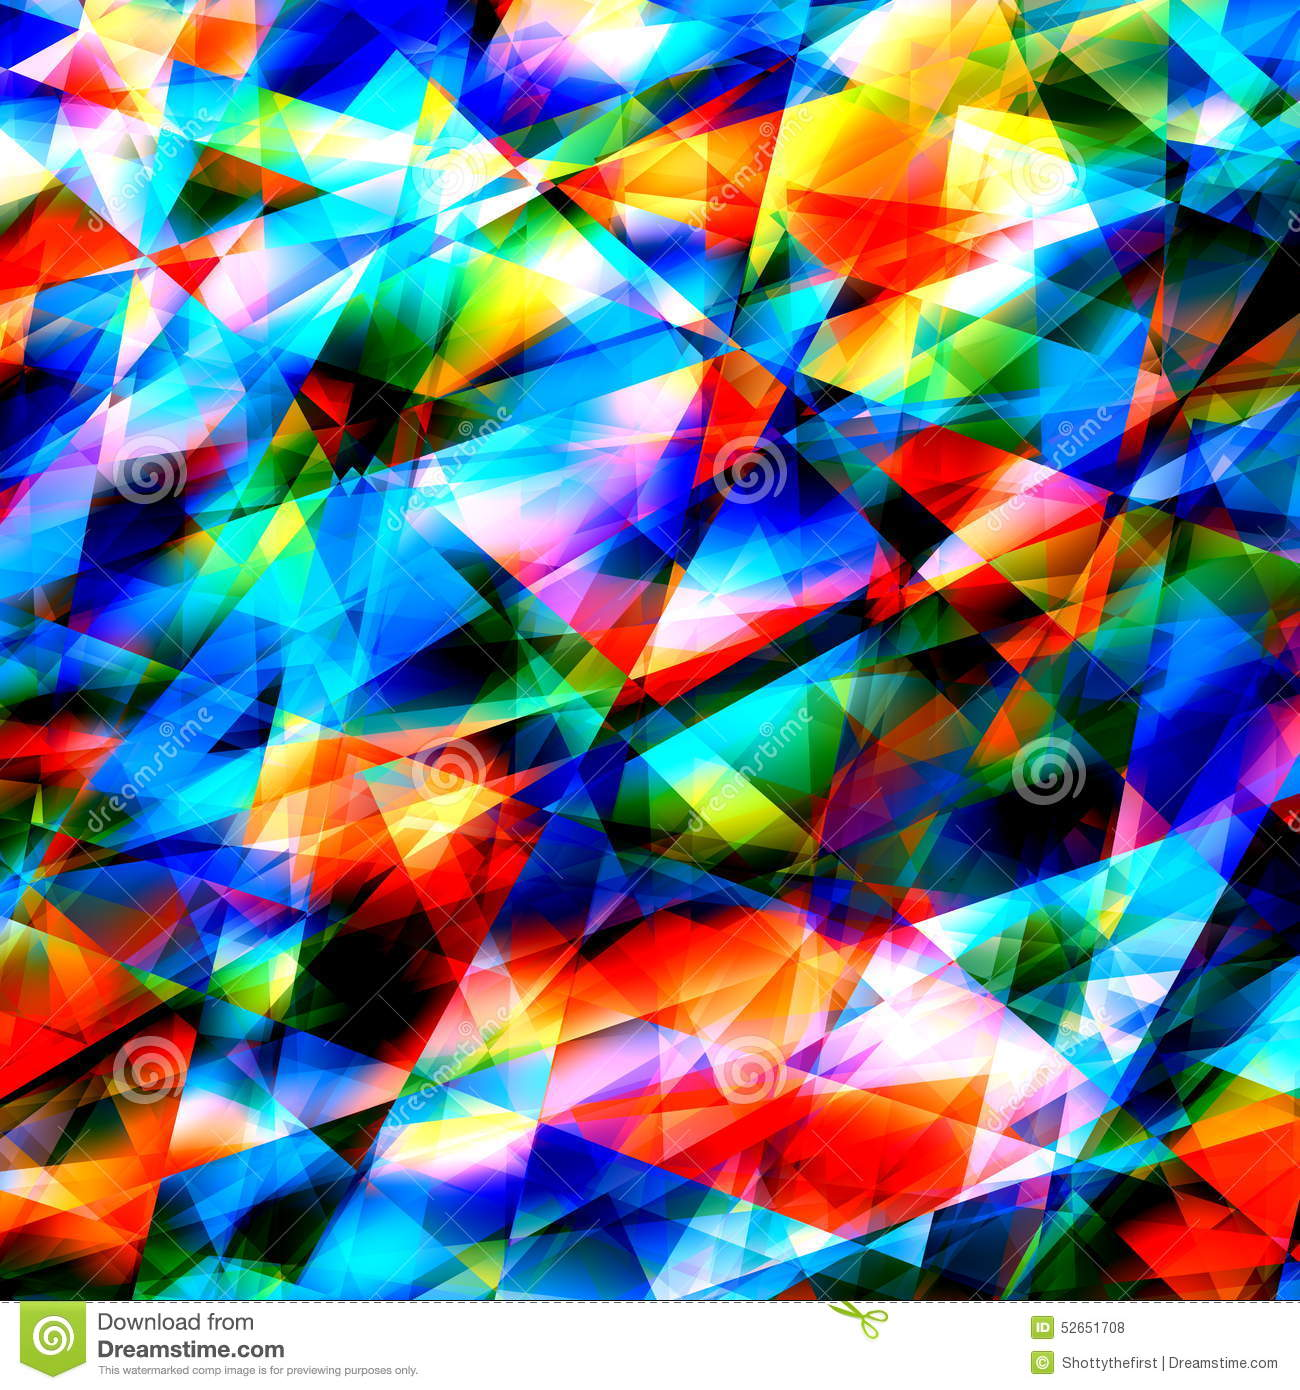 Colorful Geometric Art Background. Cracked or Broken Glass. Modern Polygonal Illustration. Triangular Abstract Pattern. Graphic.